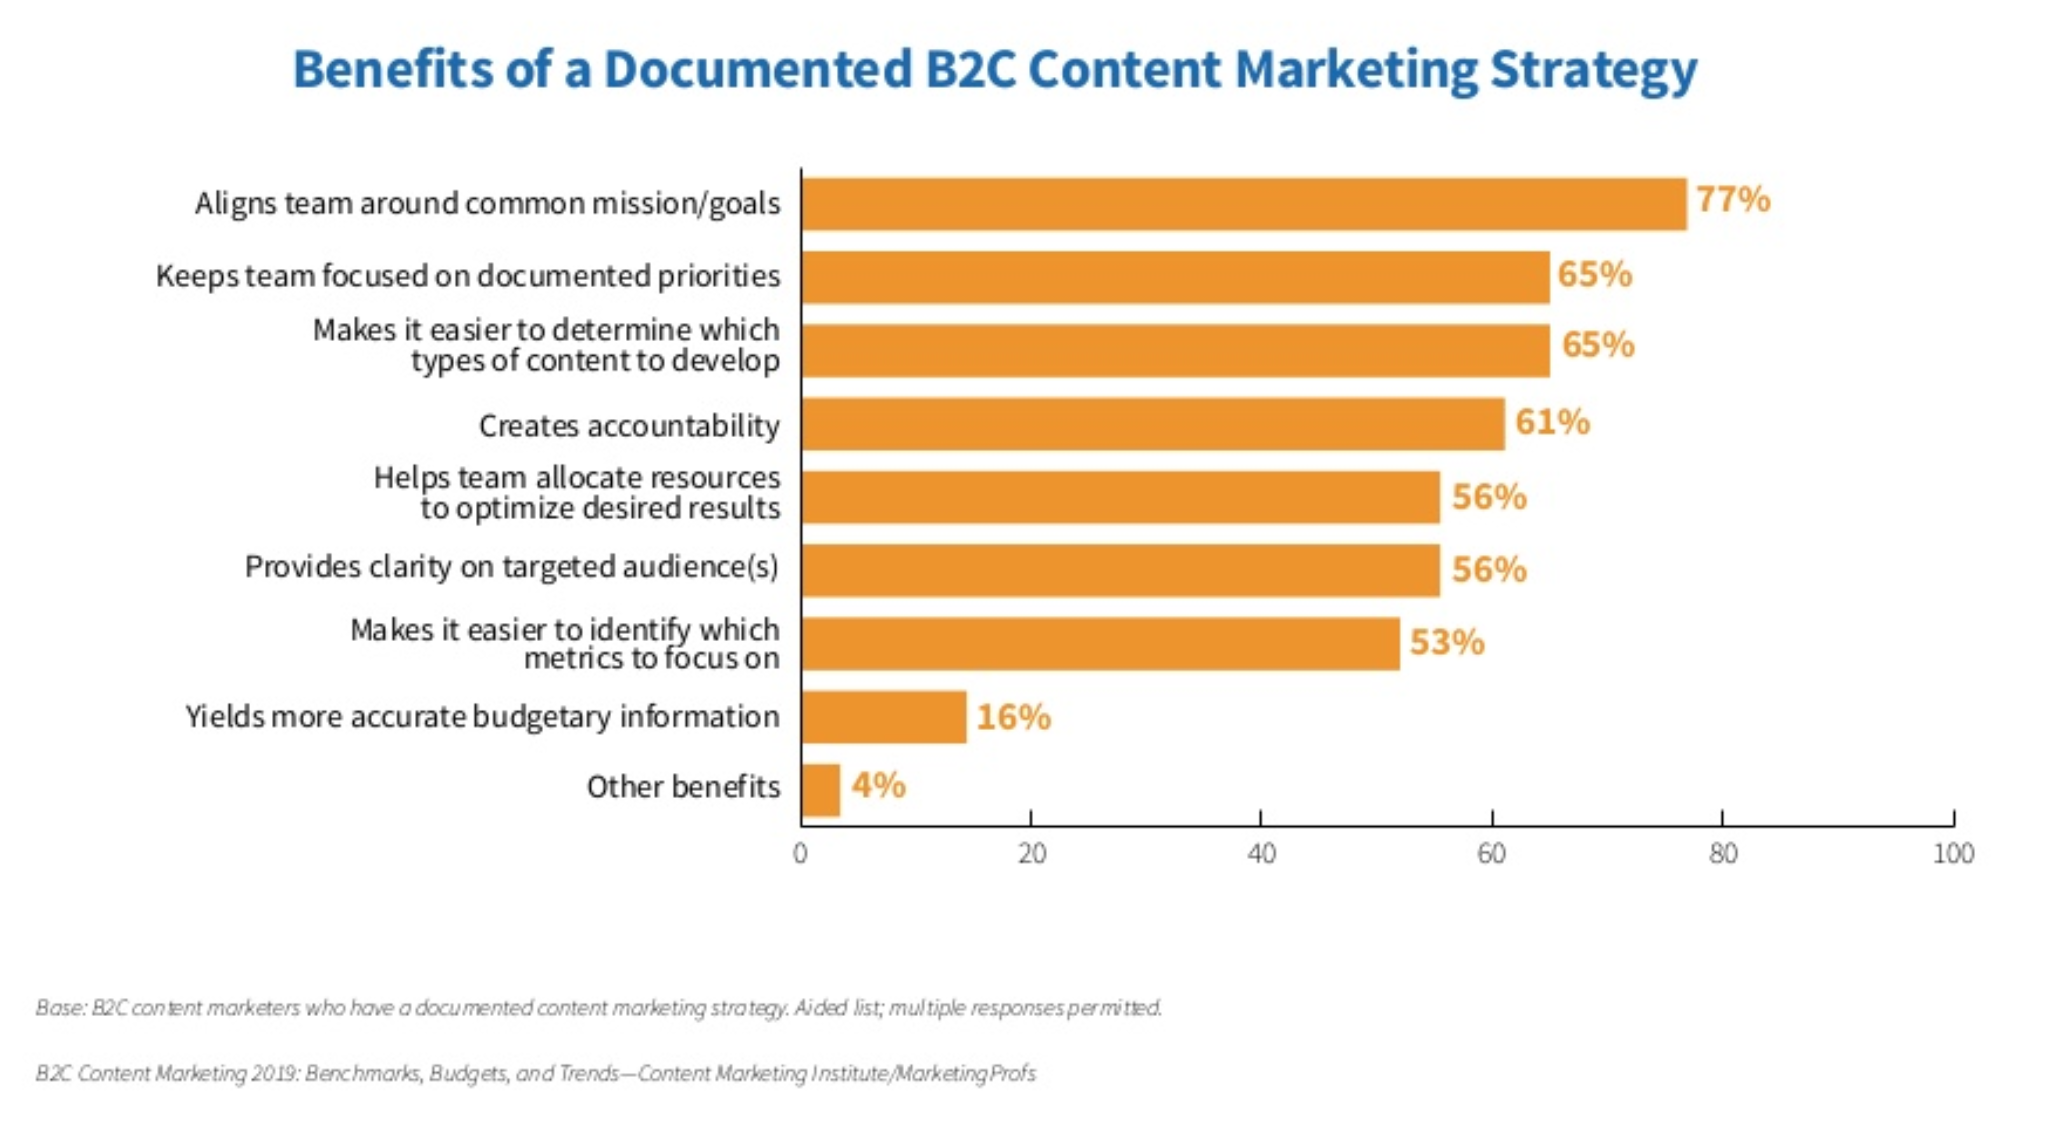 Benefits of a B2C content marketing strategy for travel